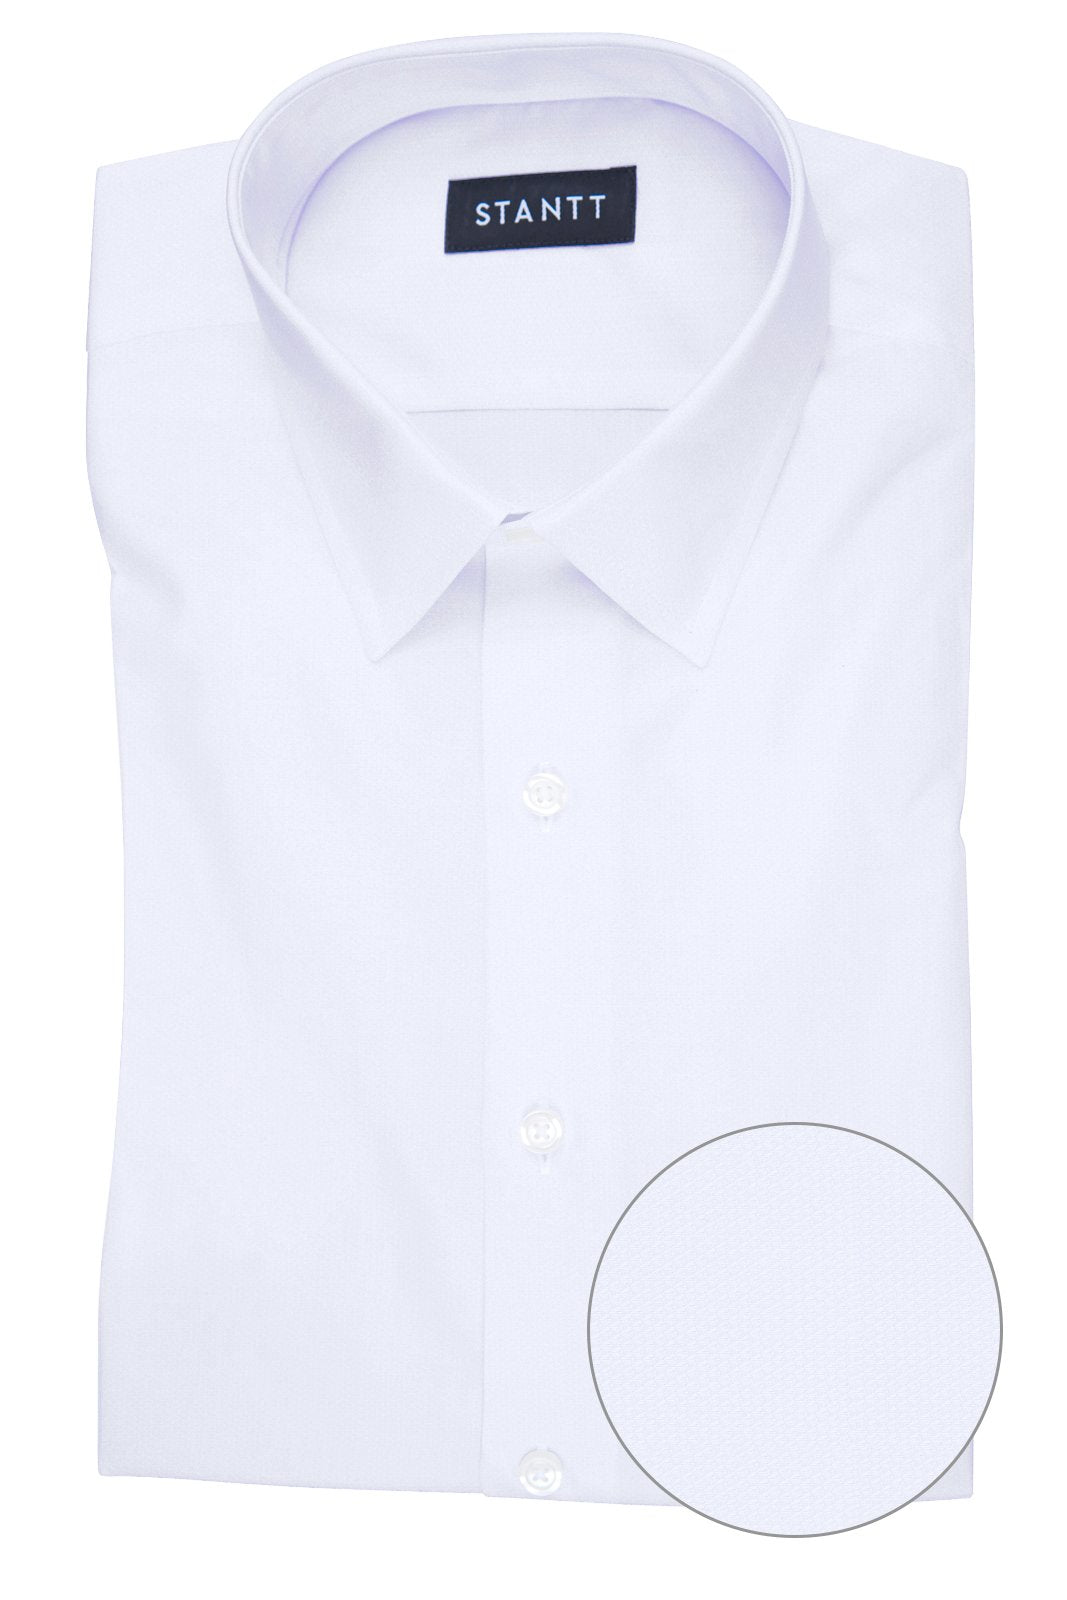 Wrinkle-Resistant White Heart Dobby: Semi-Spread Collar, French Cuff